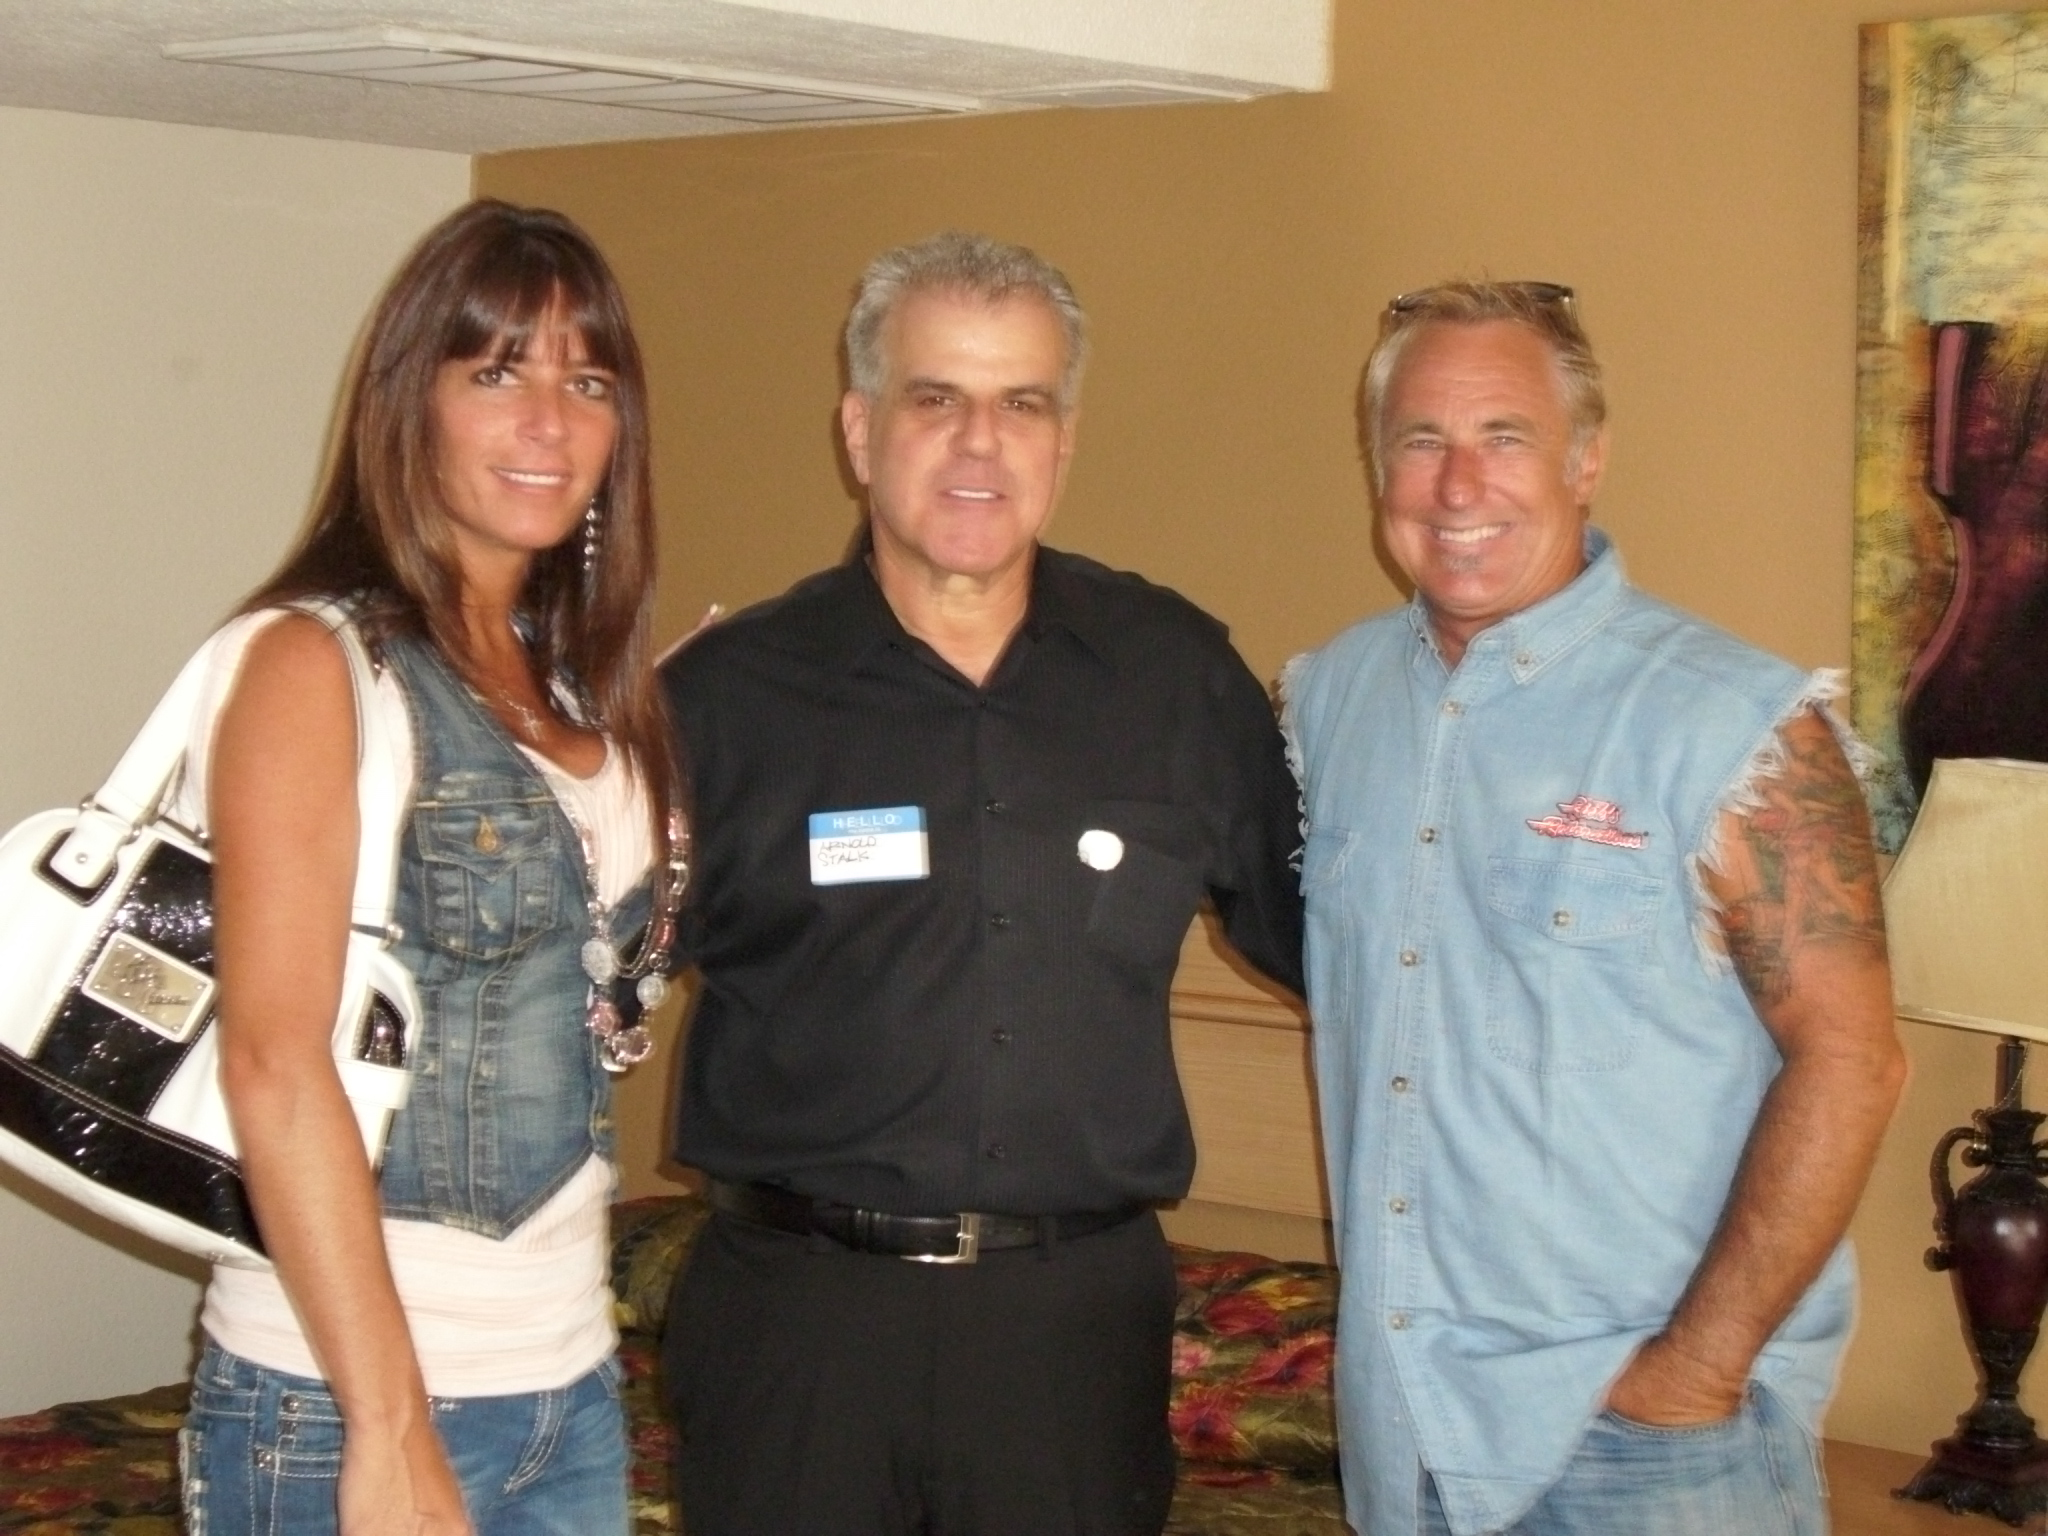 Arnold Stalk and Rick and Kelly Dale from American Restoration